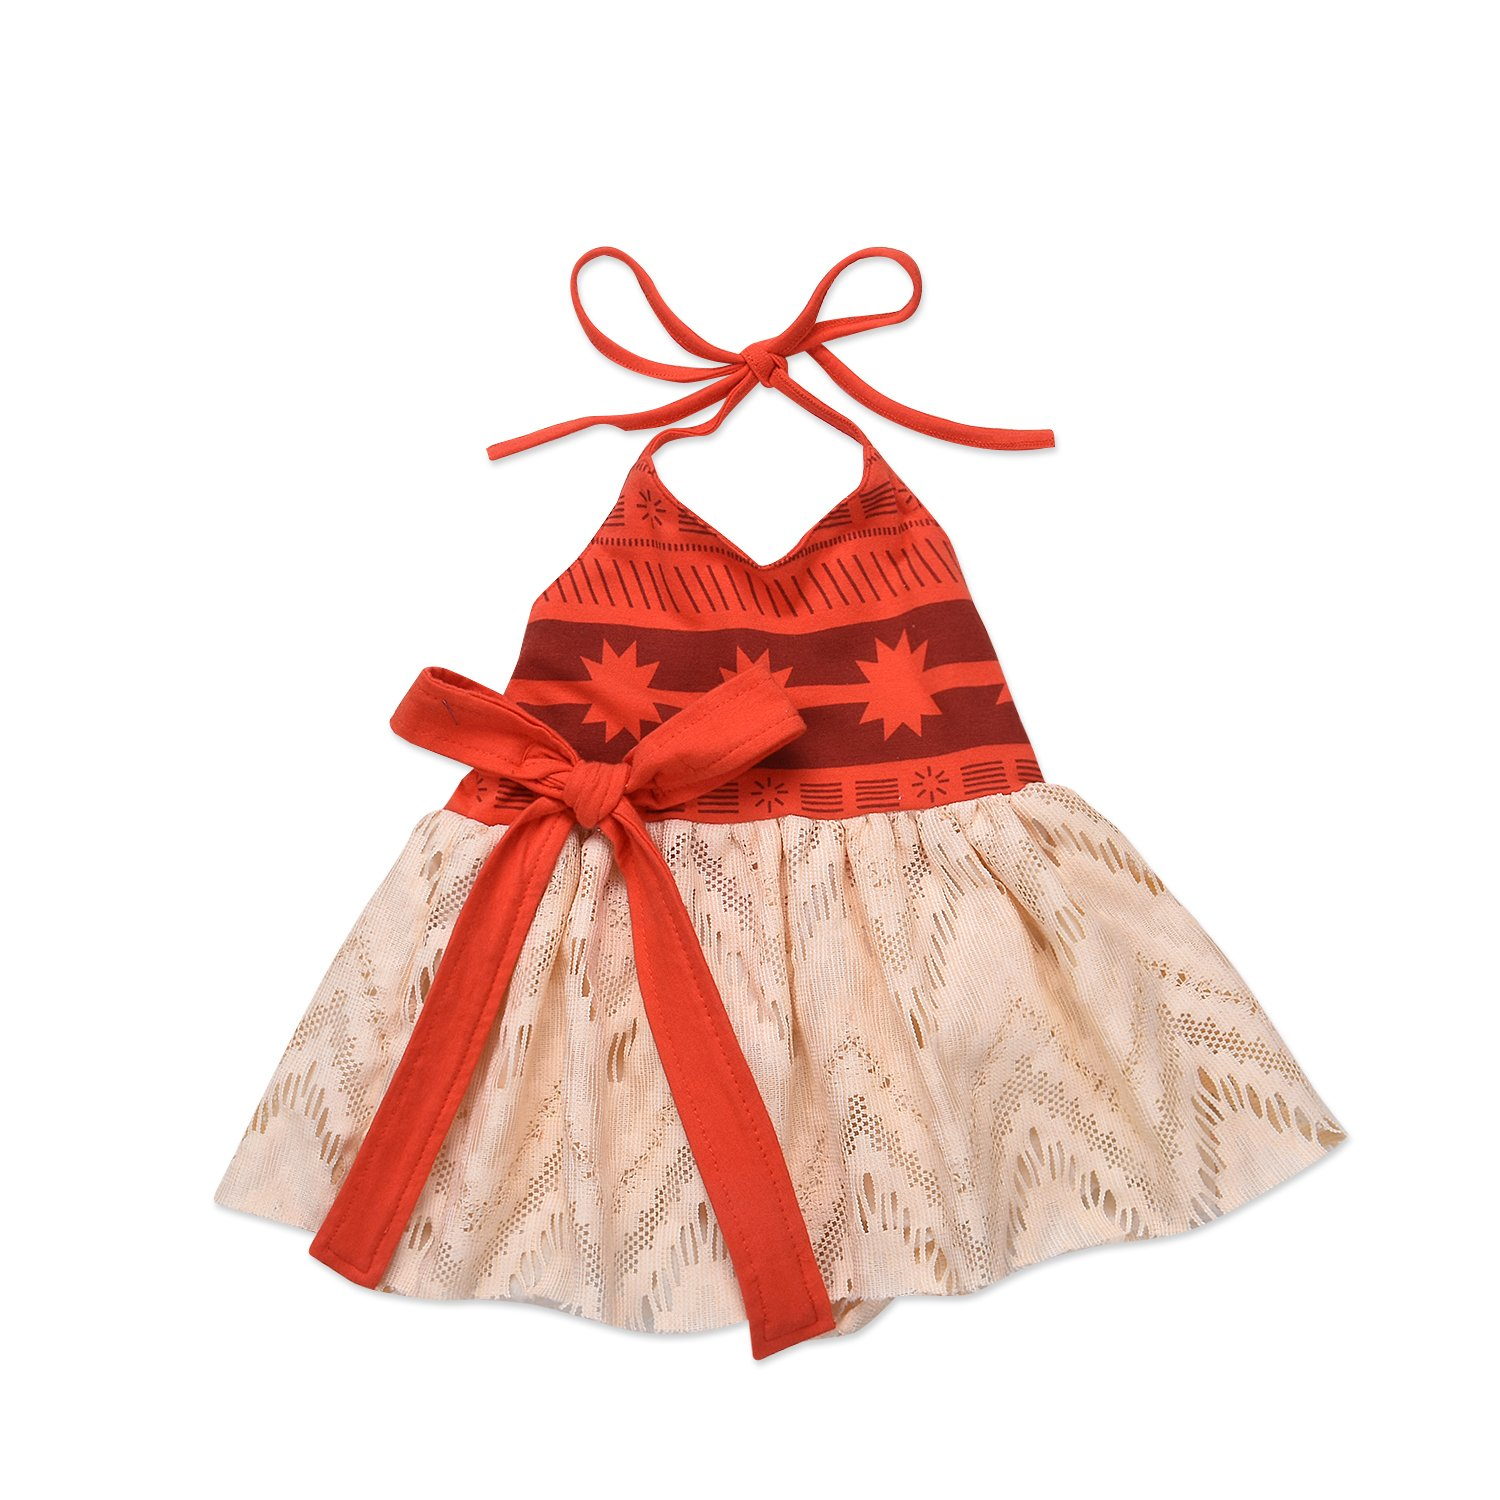 hirigin 0-4Y Baby Kids Girls Princess Dress Summer Sleeveless Backless Strap Tutu Bow Beach Dresses Sundress Clothes